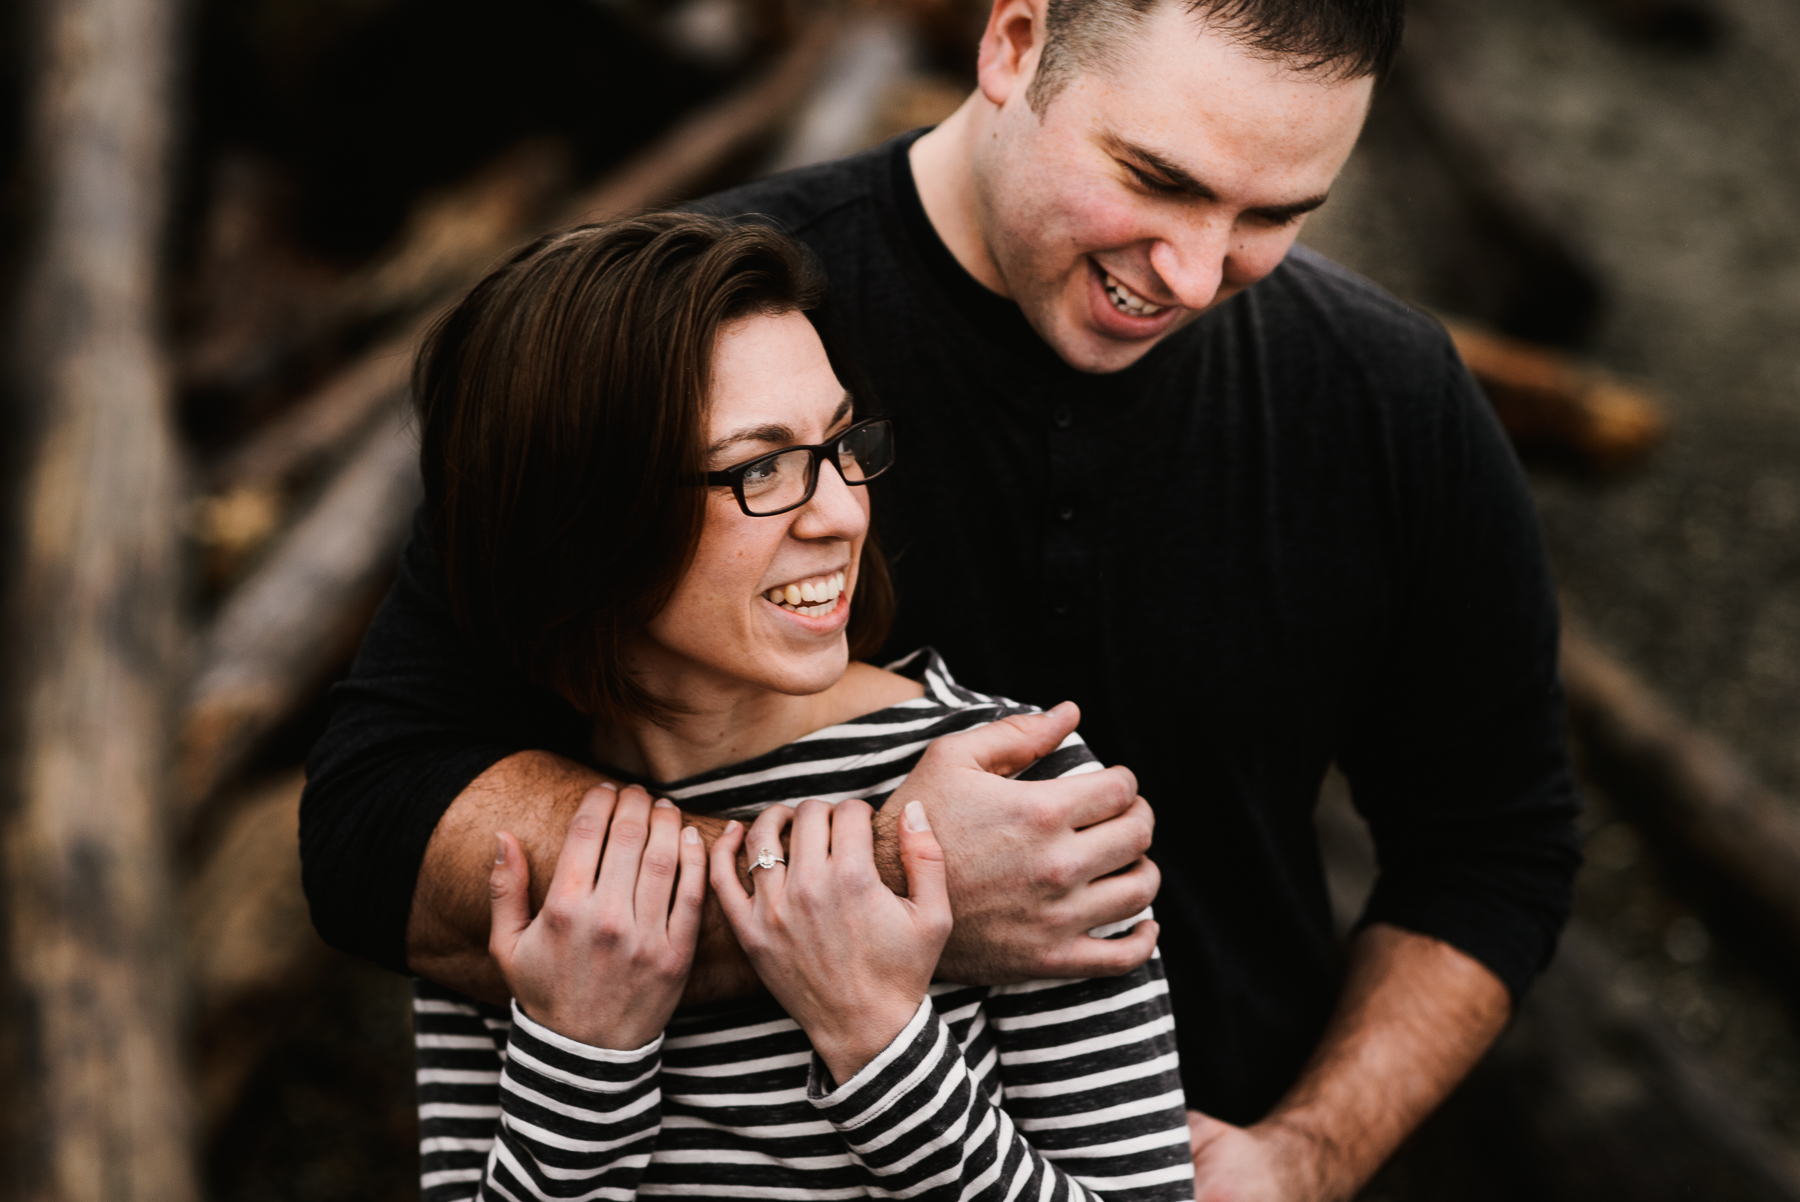 tacoma-point-defiance-park-engagement-session-12